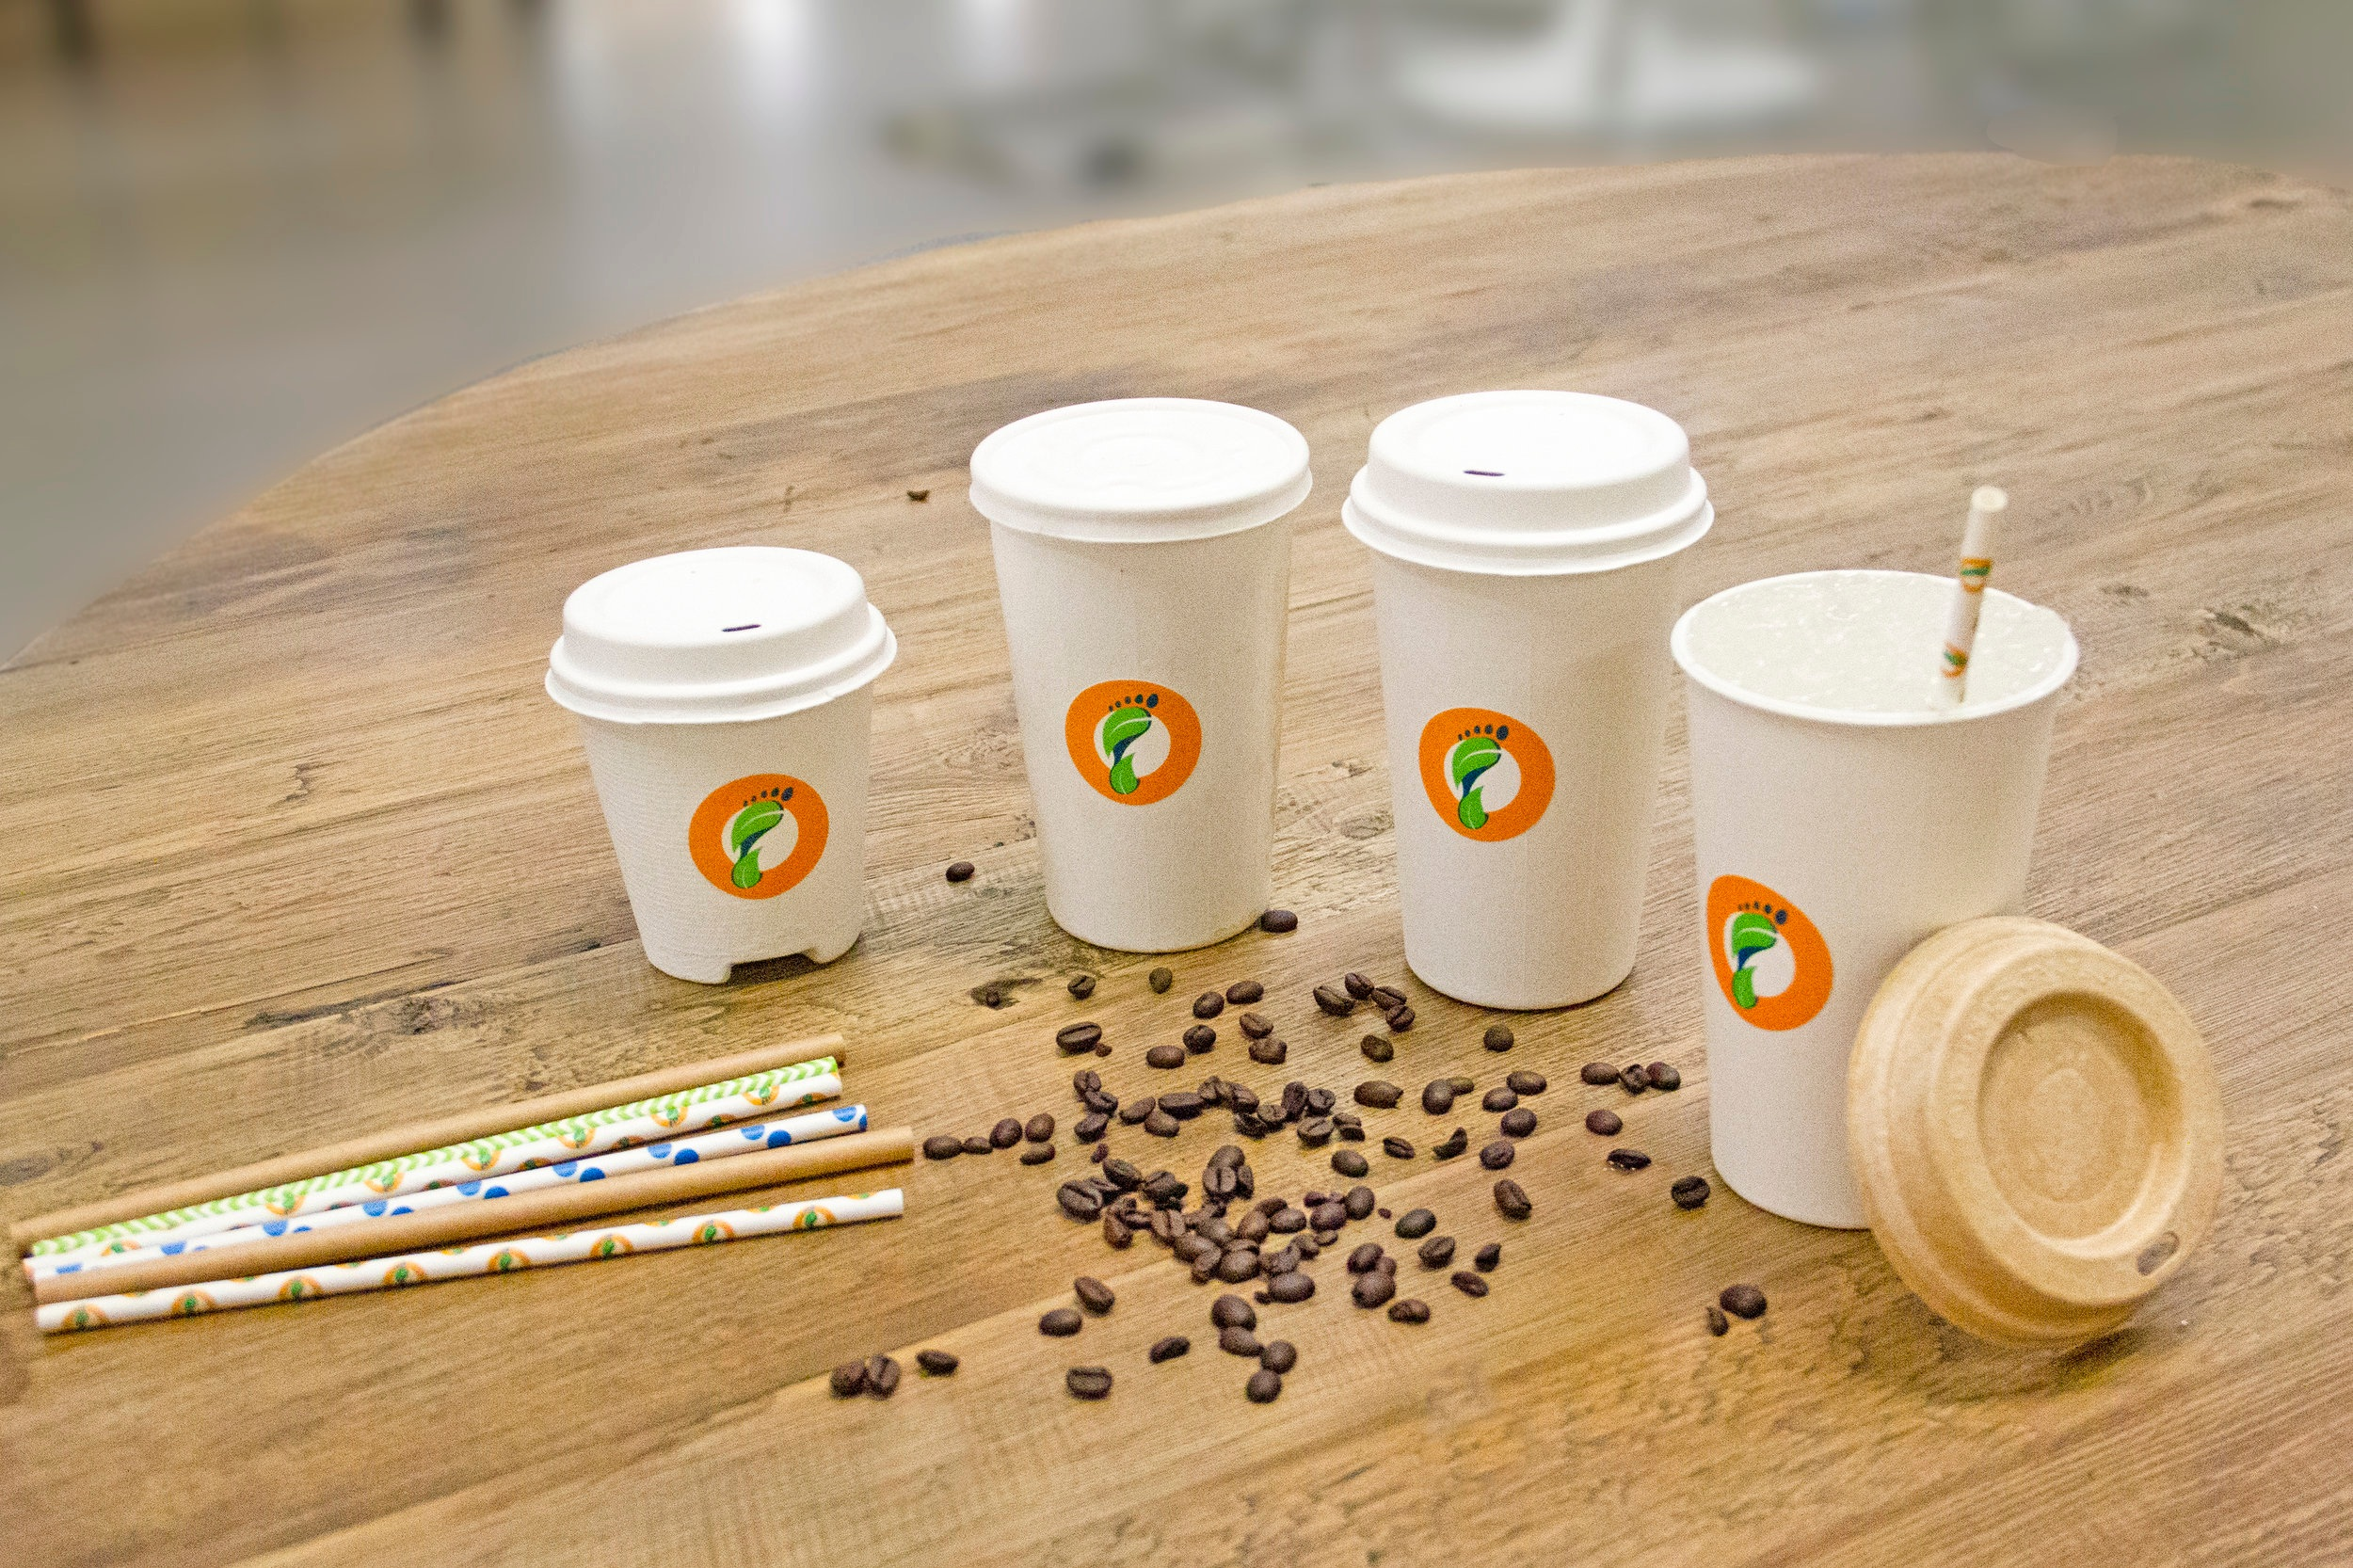 Footprint - USAINNOVATIVE CUP LINER CATEGORYFootprint creates cups, lids and straws that are fully formed fiber-based solutions, with an aqueous-based coating that is recyclable and compostable.